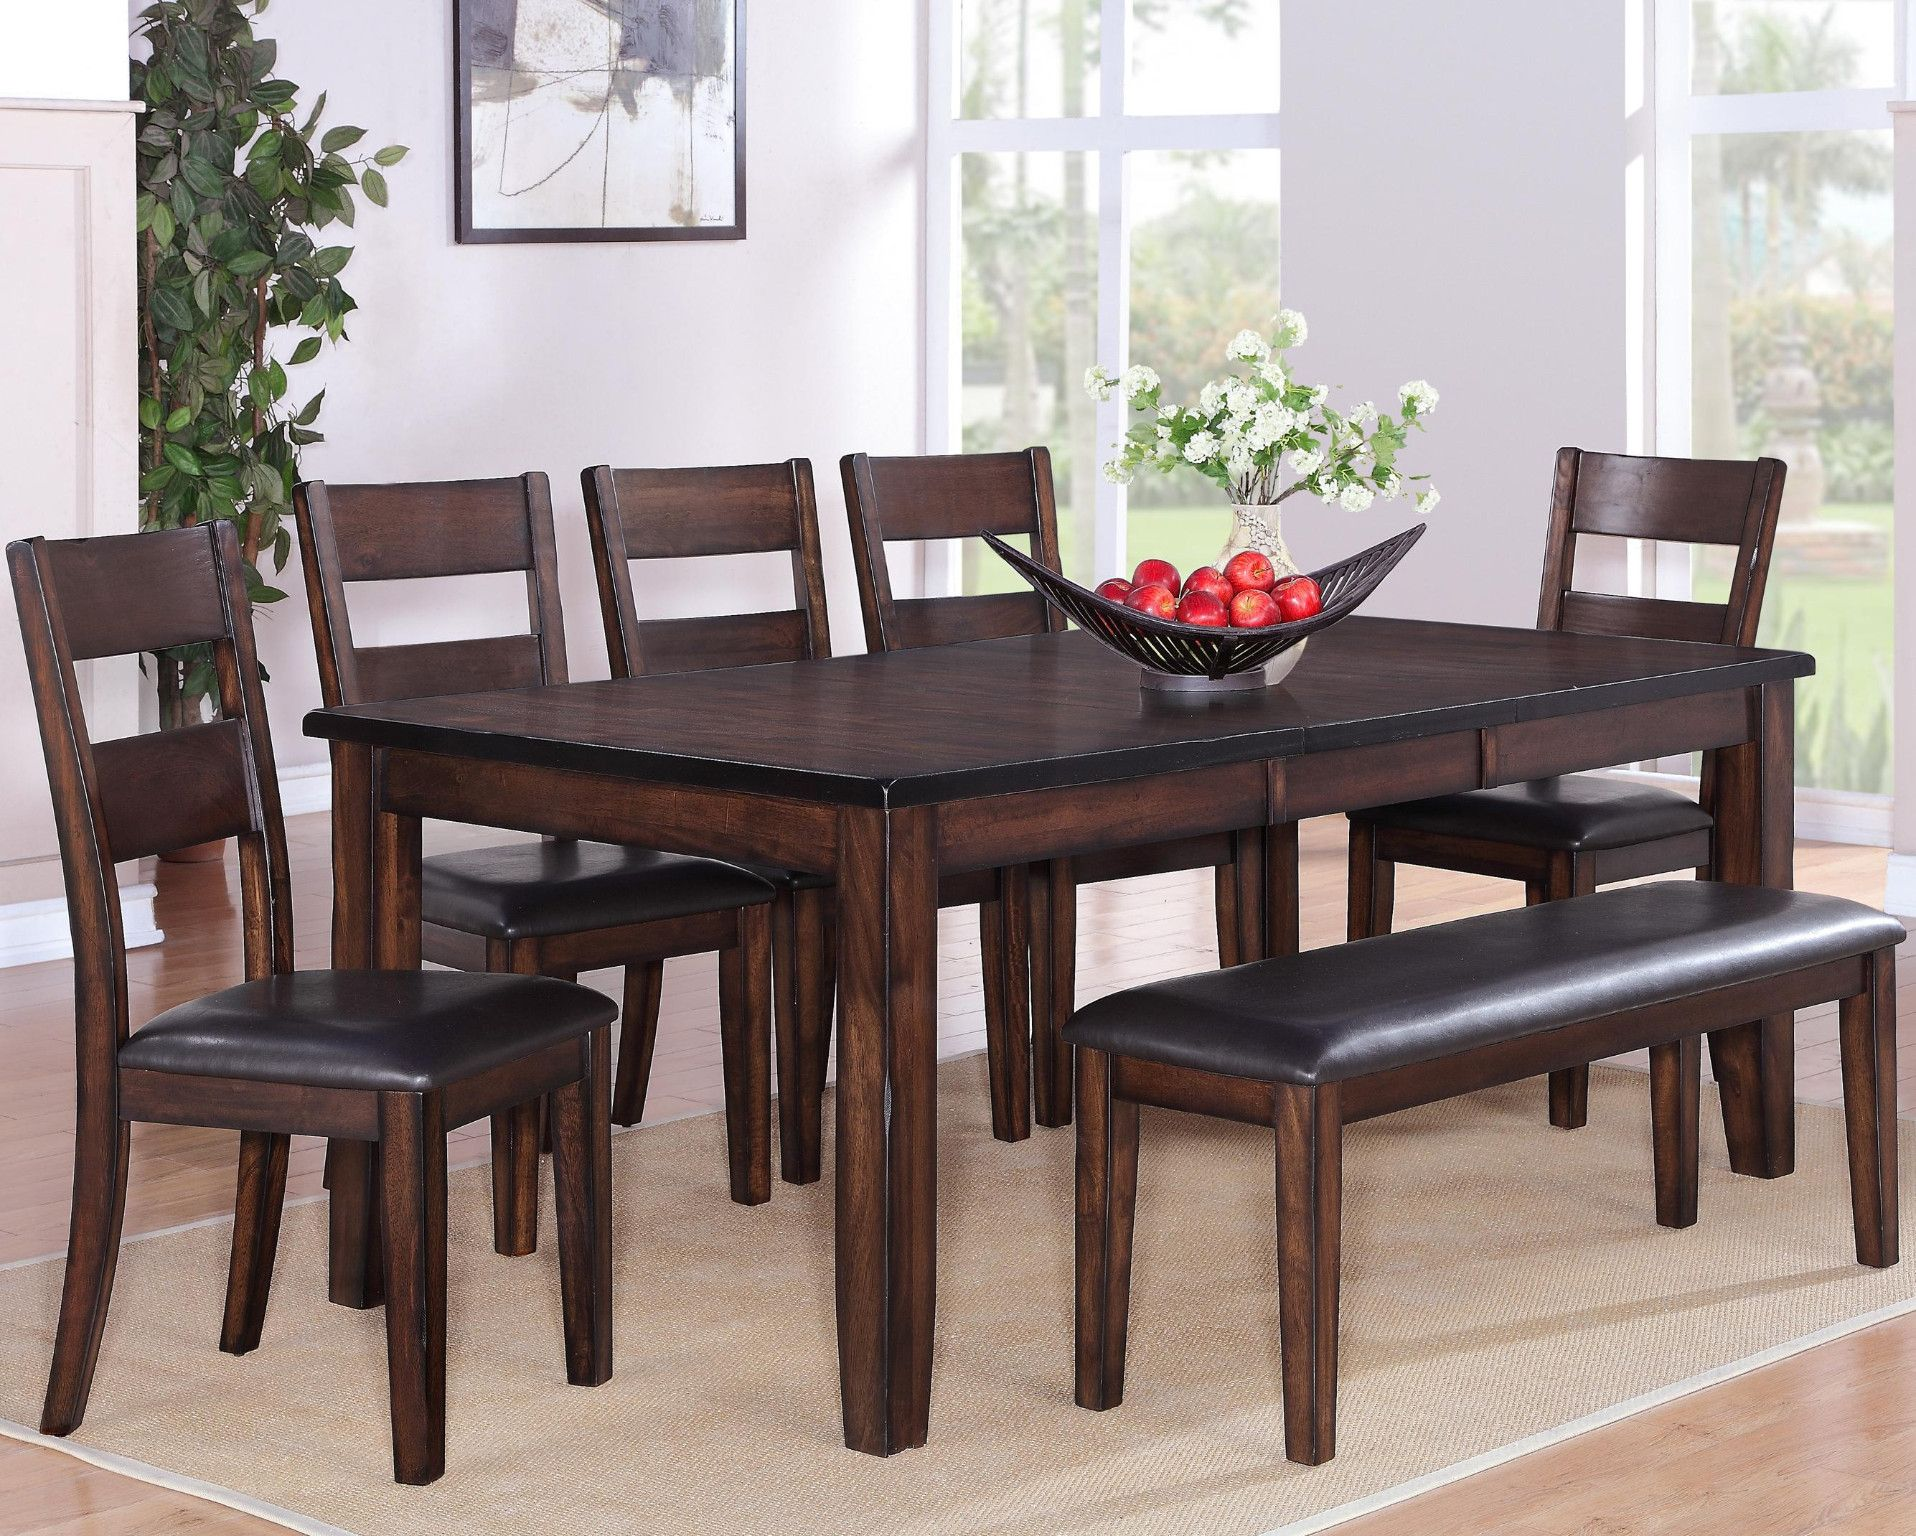 maldives 5 piece dinette table and 4 chairs 699 00 table 459 00